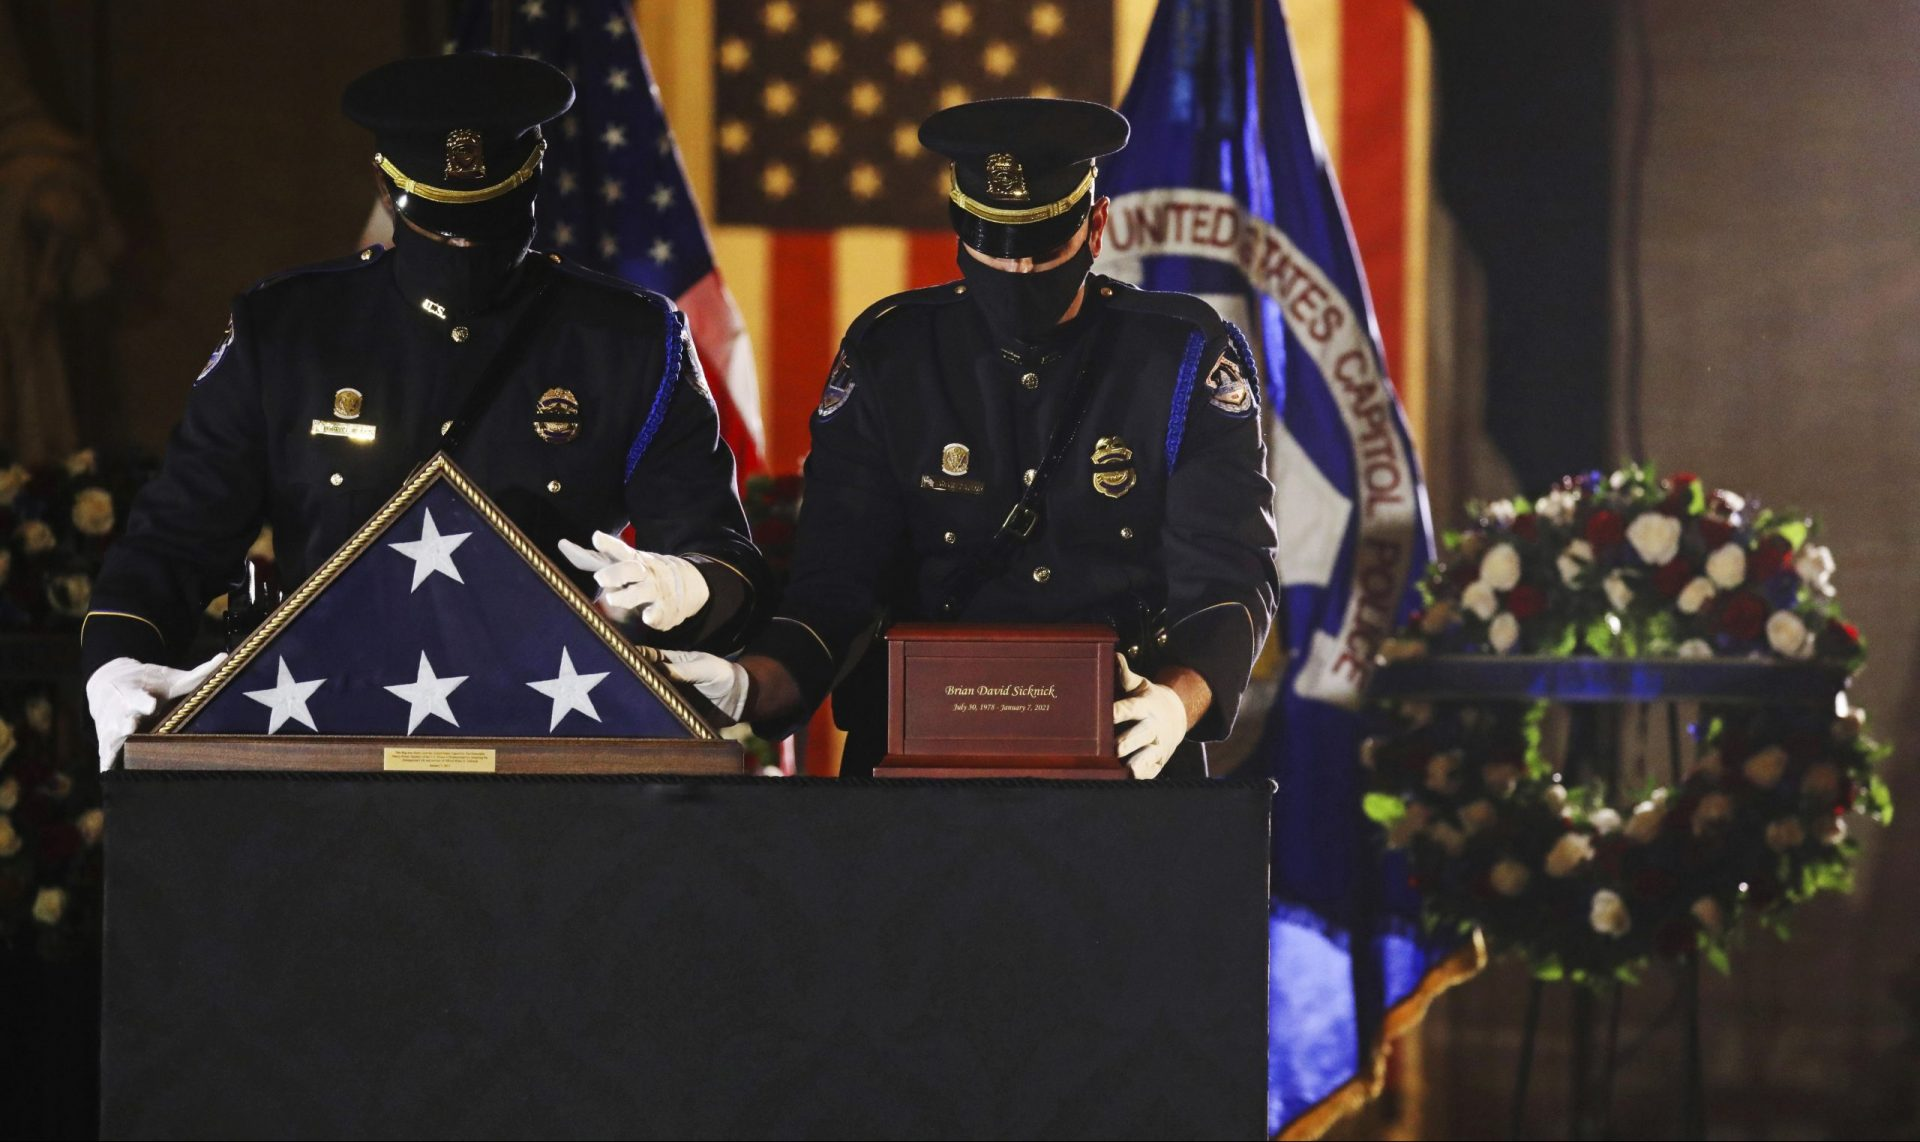 An honor guard places an urn with the cremated remains of U.S. Capitol Police officer Brian Sicknick and folded flag on a black-draped table at center of the Capitol Rotunda to lie in honor Tuesday, Feb. 2, 2021, in Washington.